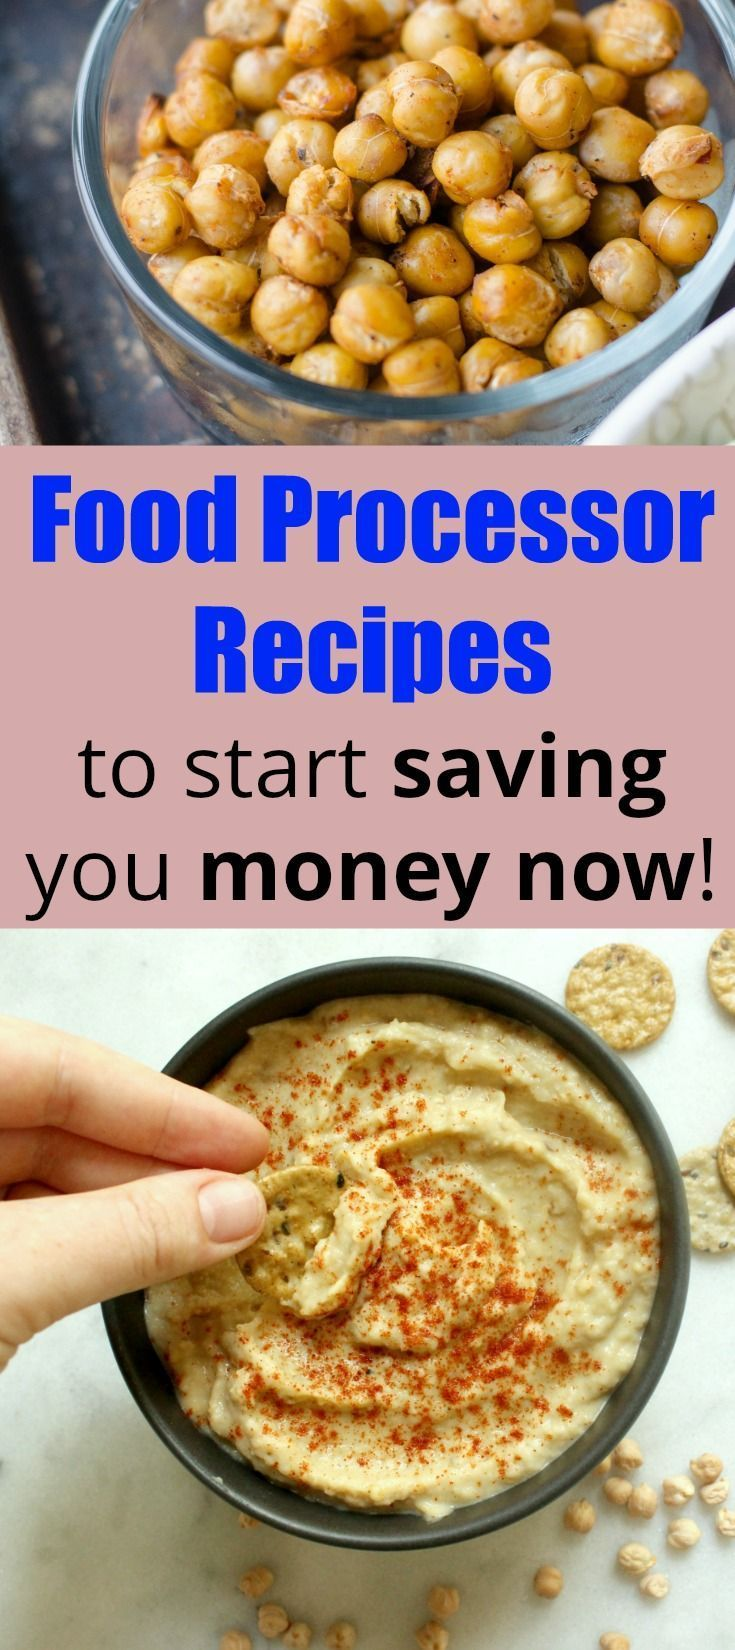 Start saving money now easy food processor recipes garbanzos easy food processor recipes garbanzos forumfinder Gallery